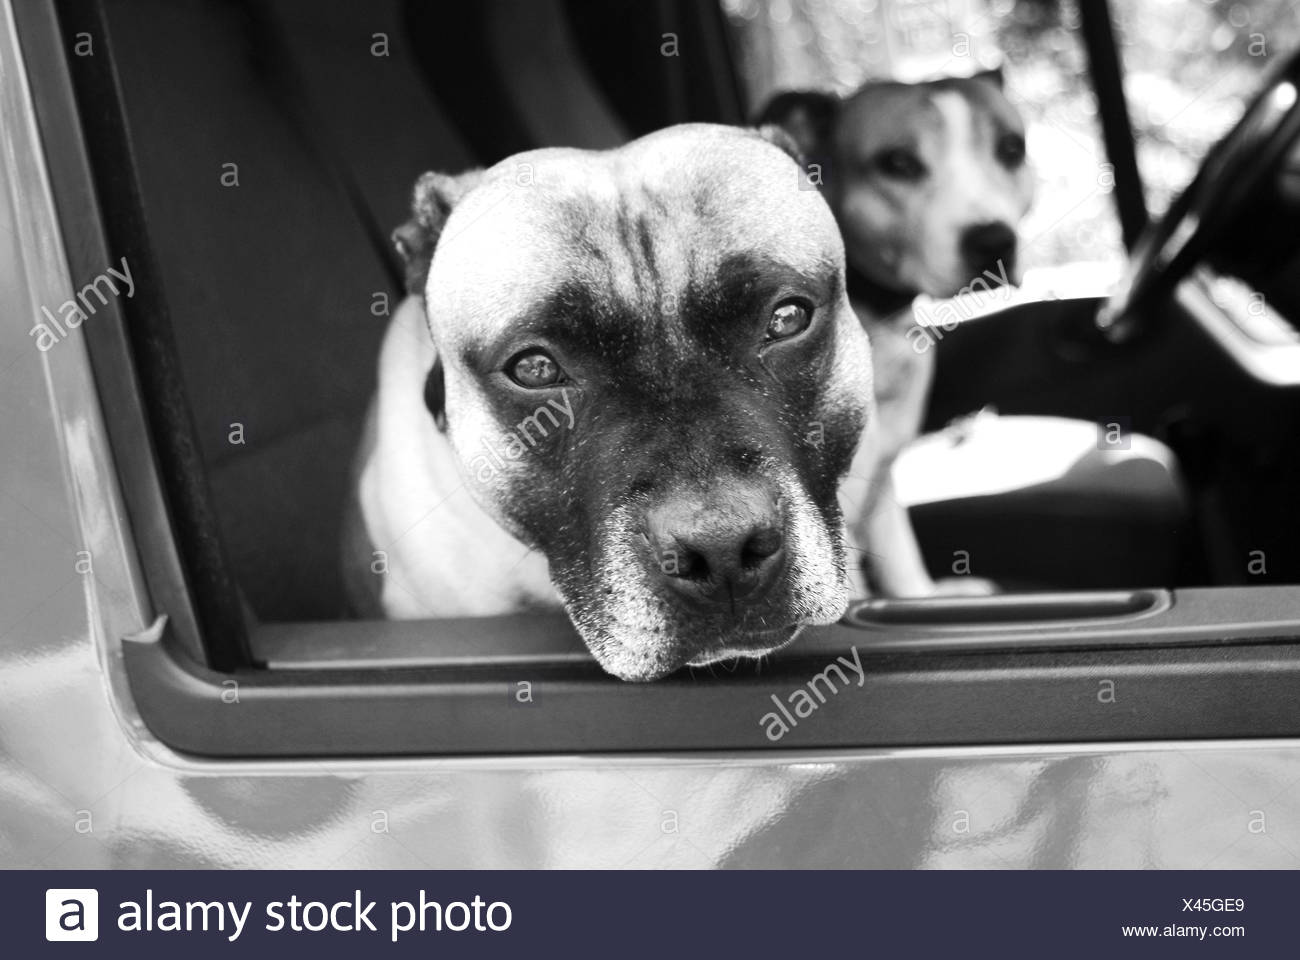 Two Staffordshire bull terriers sitting in a car - Stock Image